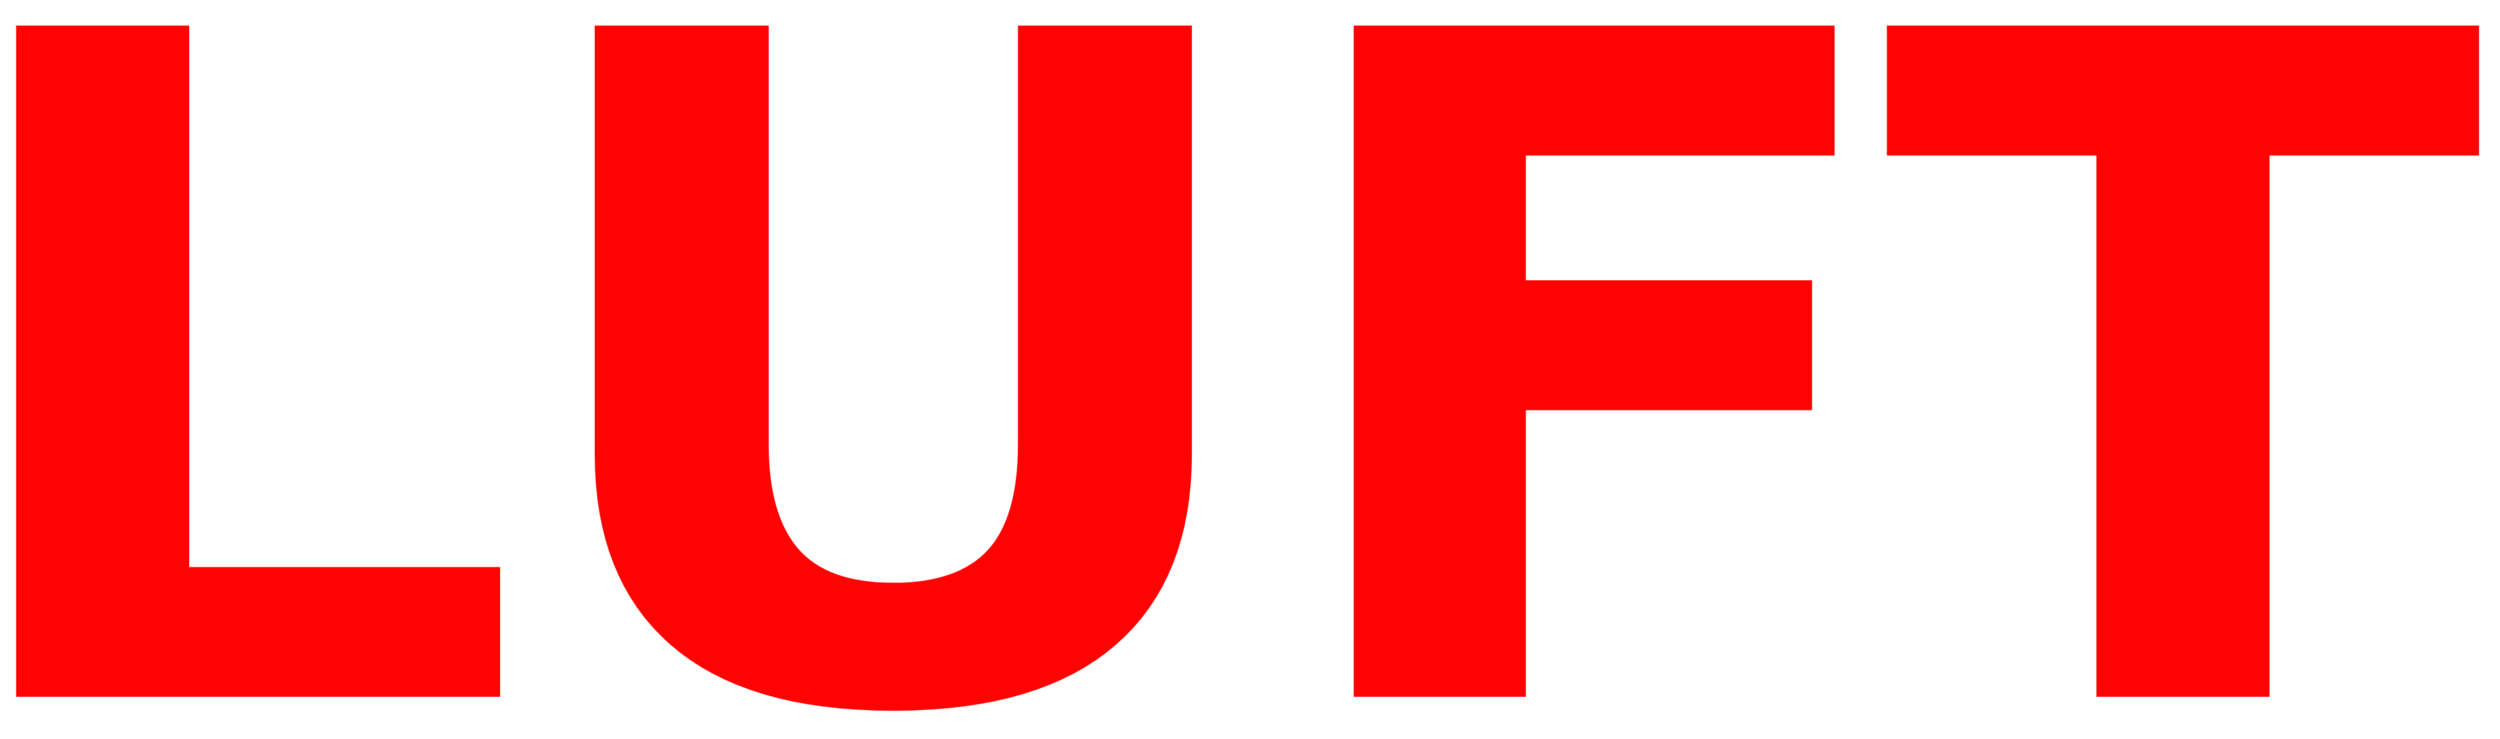 LUFT LOGO OFFICIAL.png